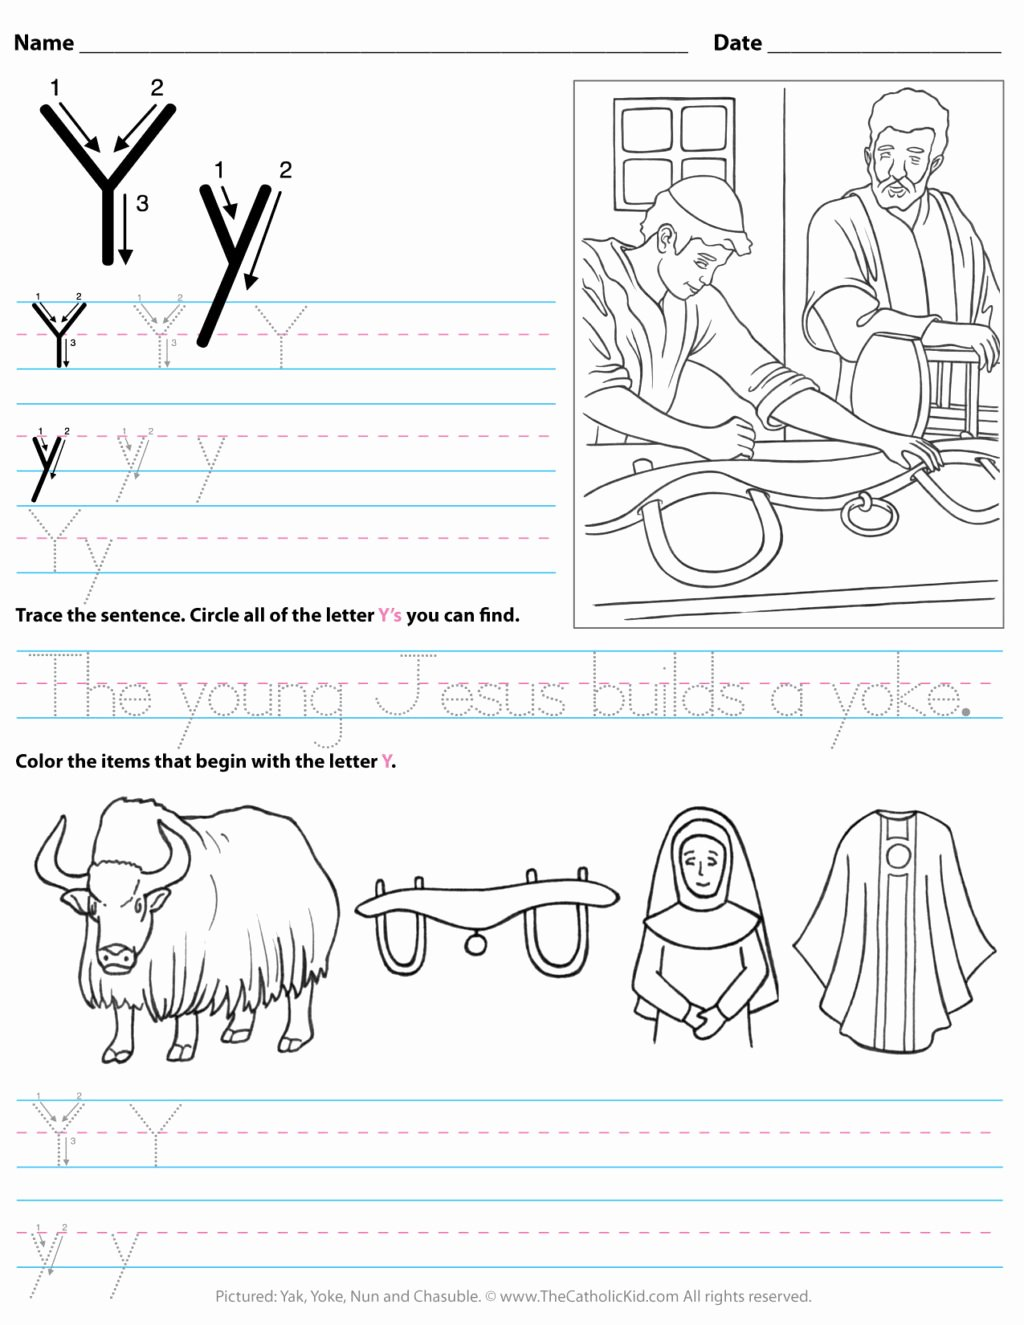 Worksheets for Preschoolers Letters Unique Worksheet Marvelous Alphabet Worksheets for Preschoolers